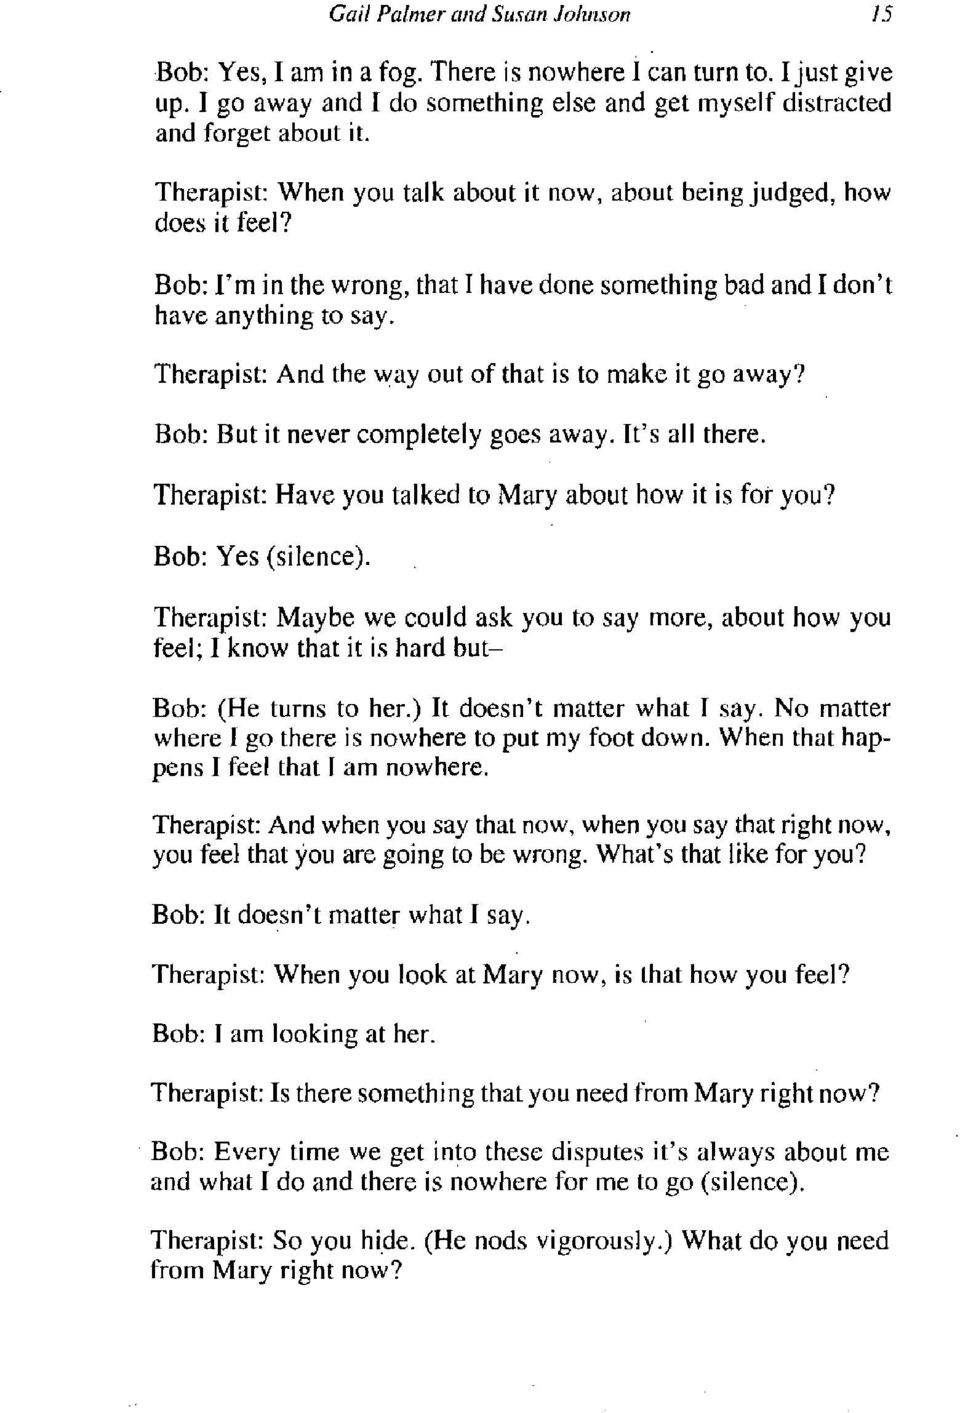 Therapist: And the way out of that is to make it go away? Bob: But it never completely goes away. It's all there. Therapist: Have you talked to Mary about how it is for you? Bob: Yes (silence).